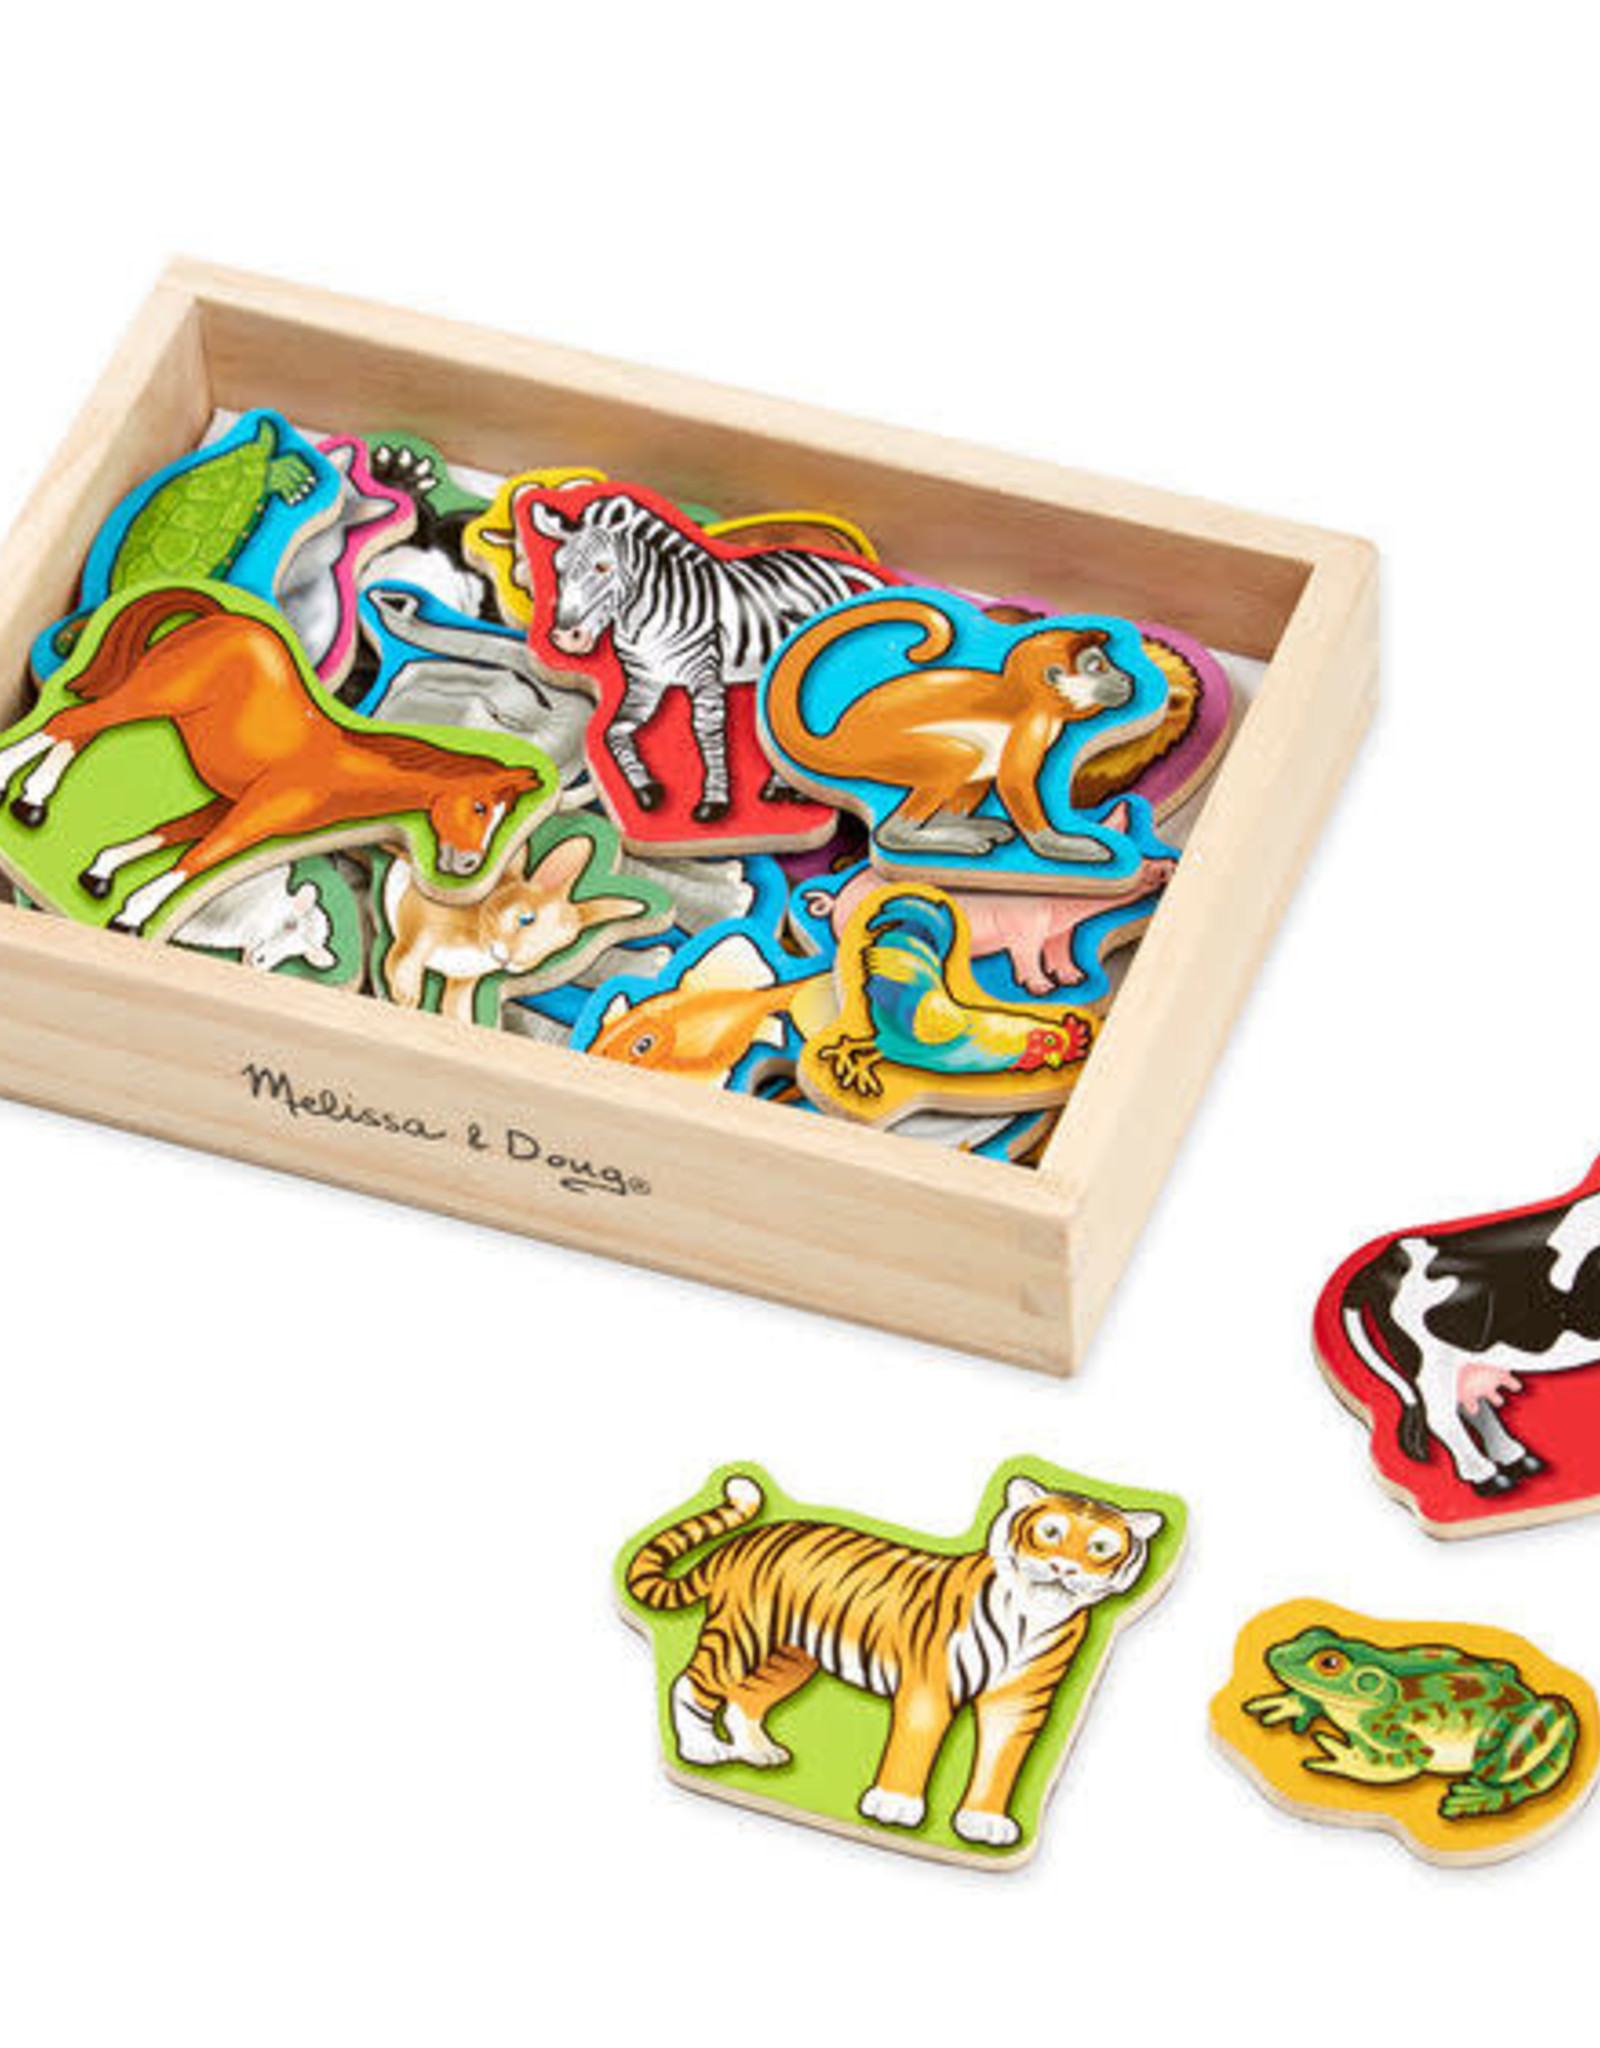 Melissa & Doug Animal Magnets